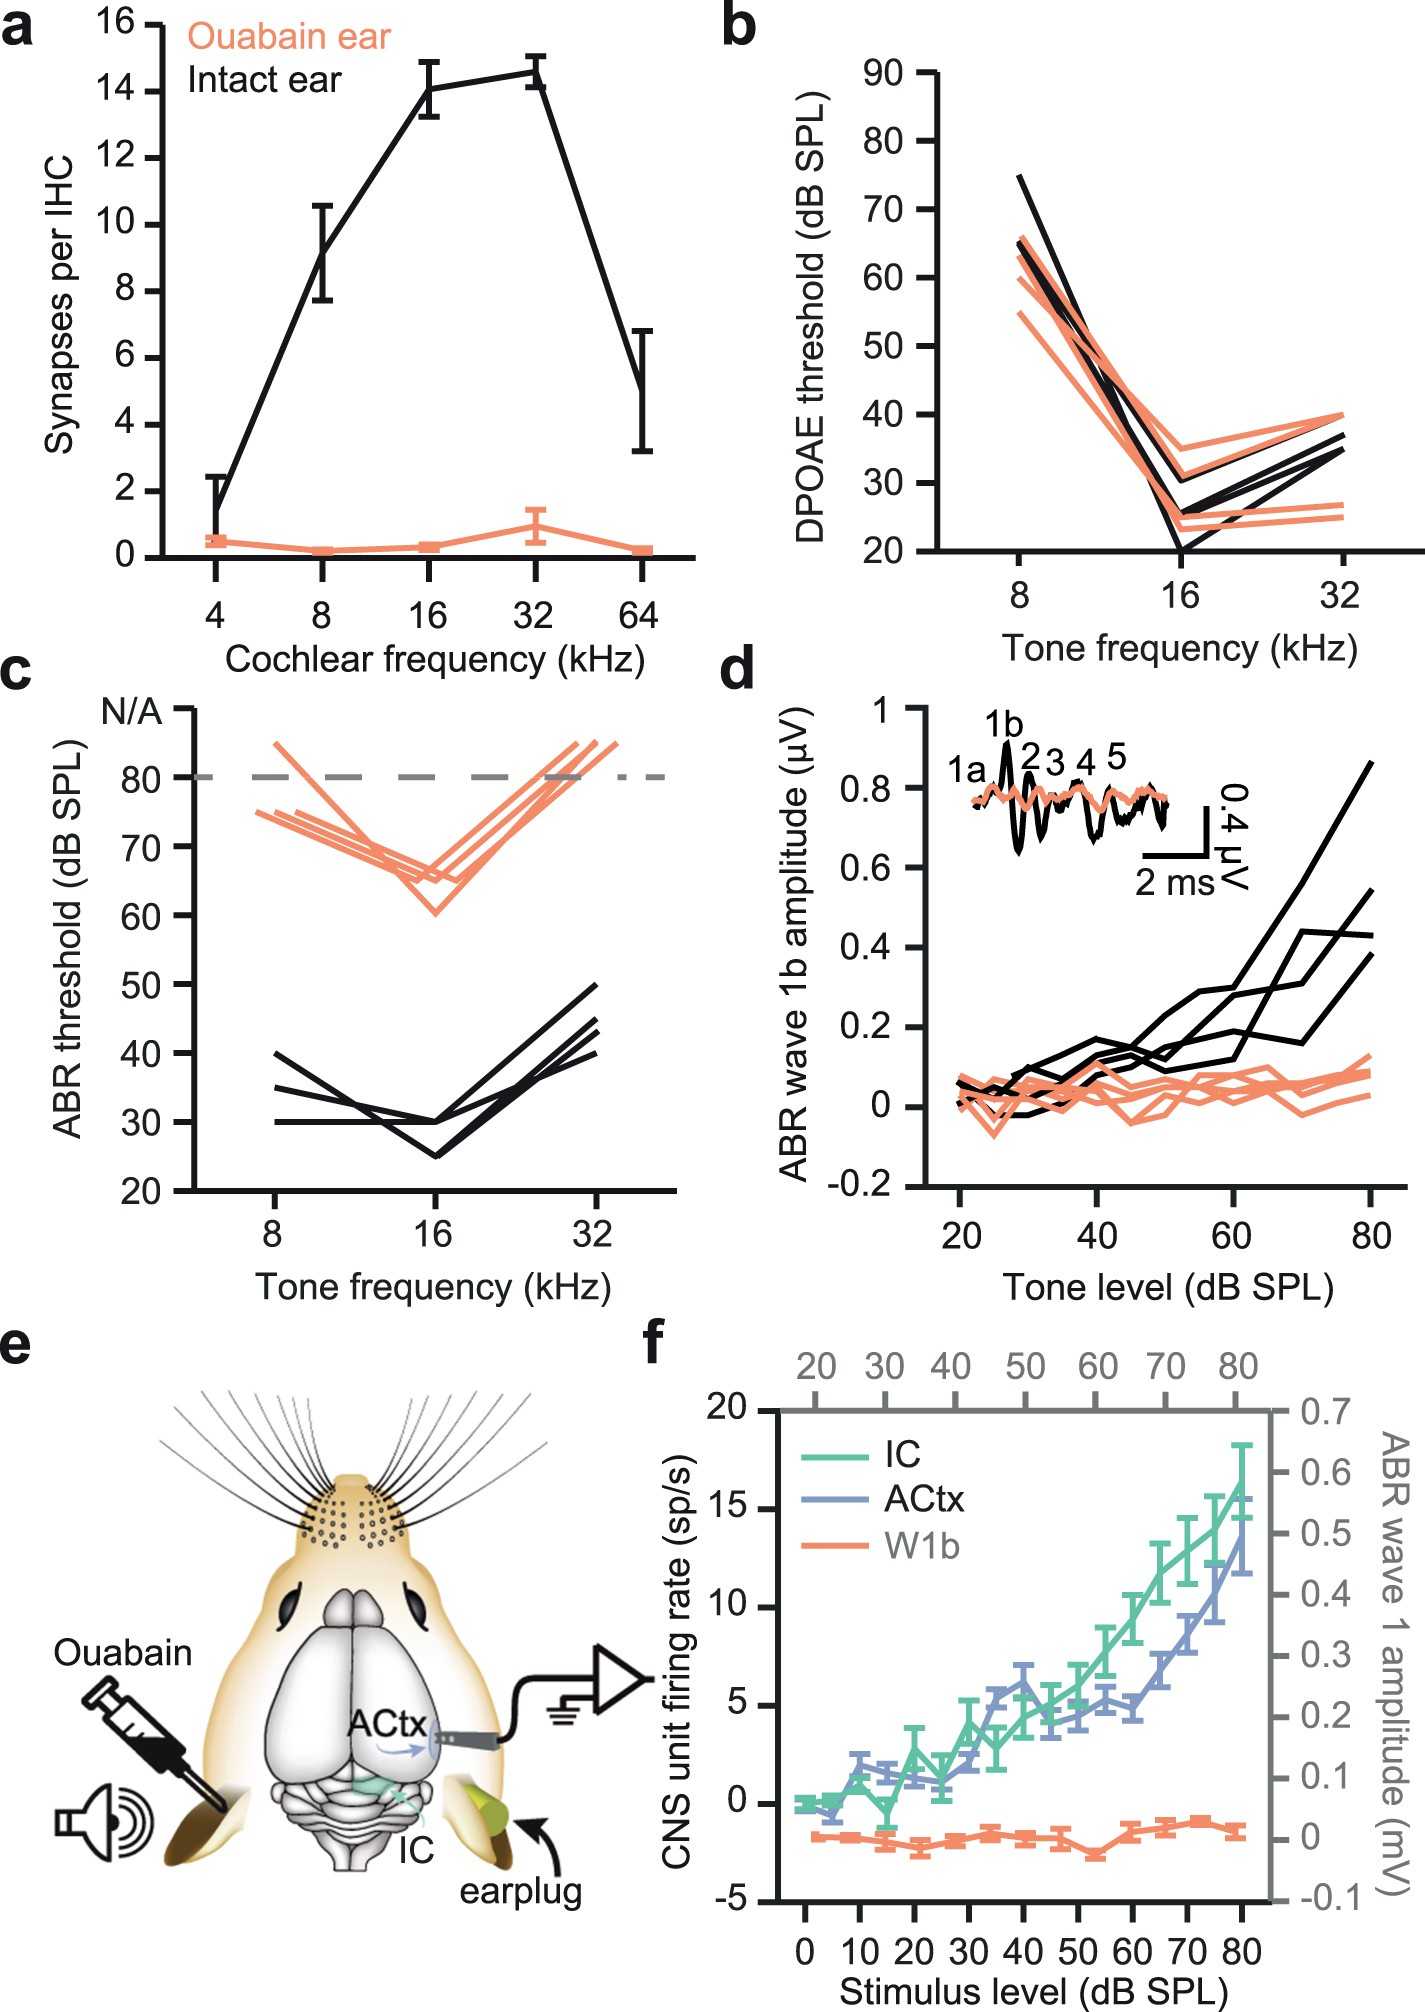 Pharmacological Modulation Of Kv31 Mitigates Auditory Midbrain Induction Cooker Circuit Signalprocessing Diagram Temporal Processing Deficits Following Nerve Damage Scientific Reports